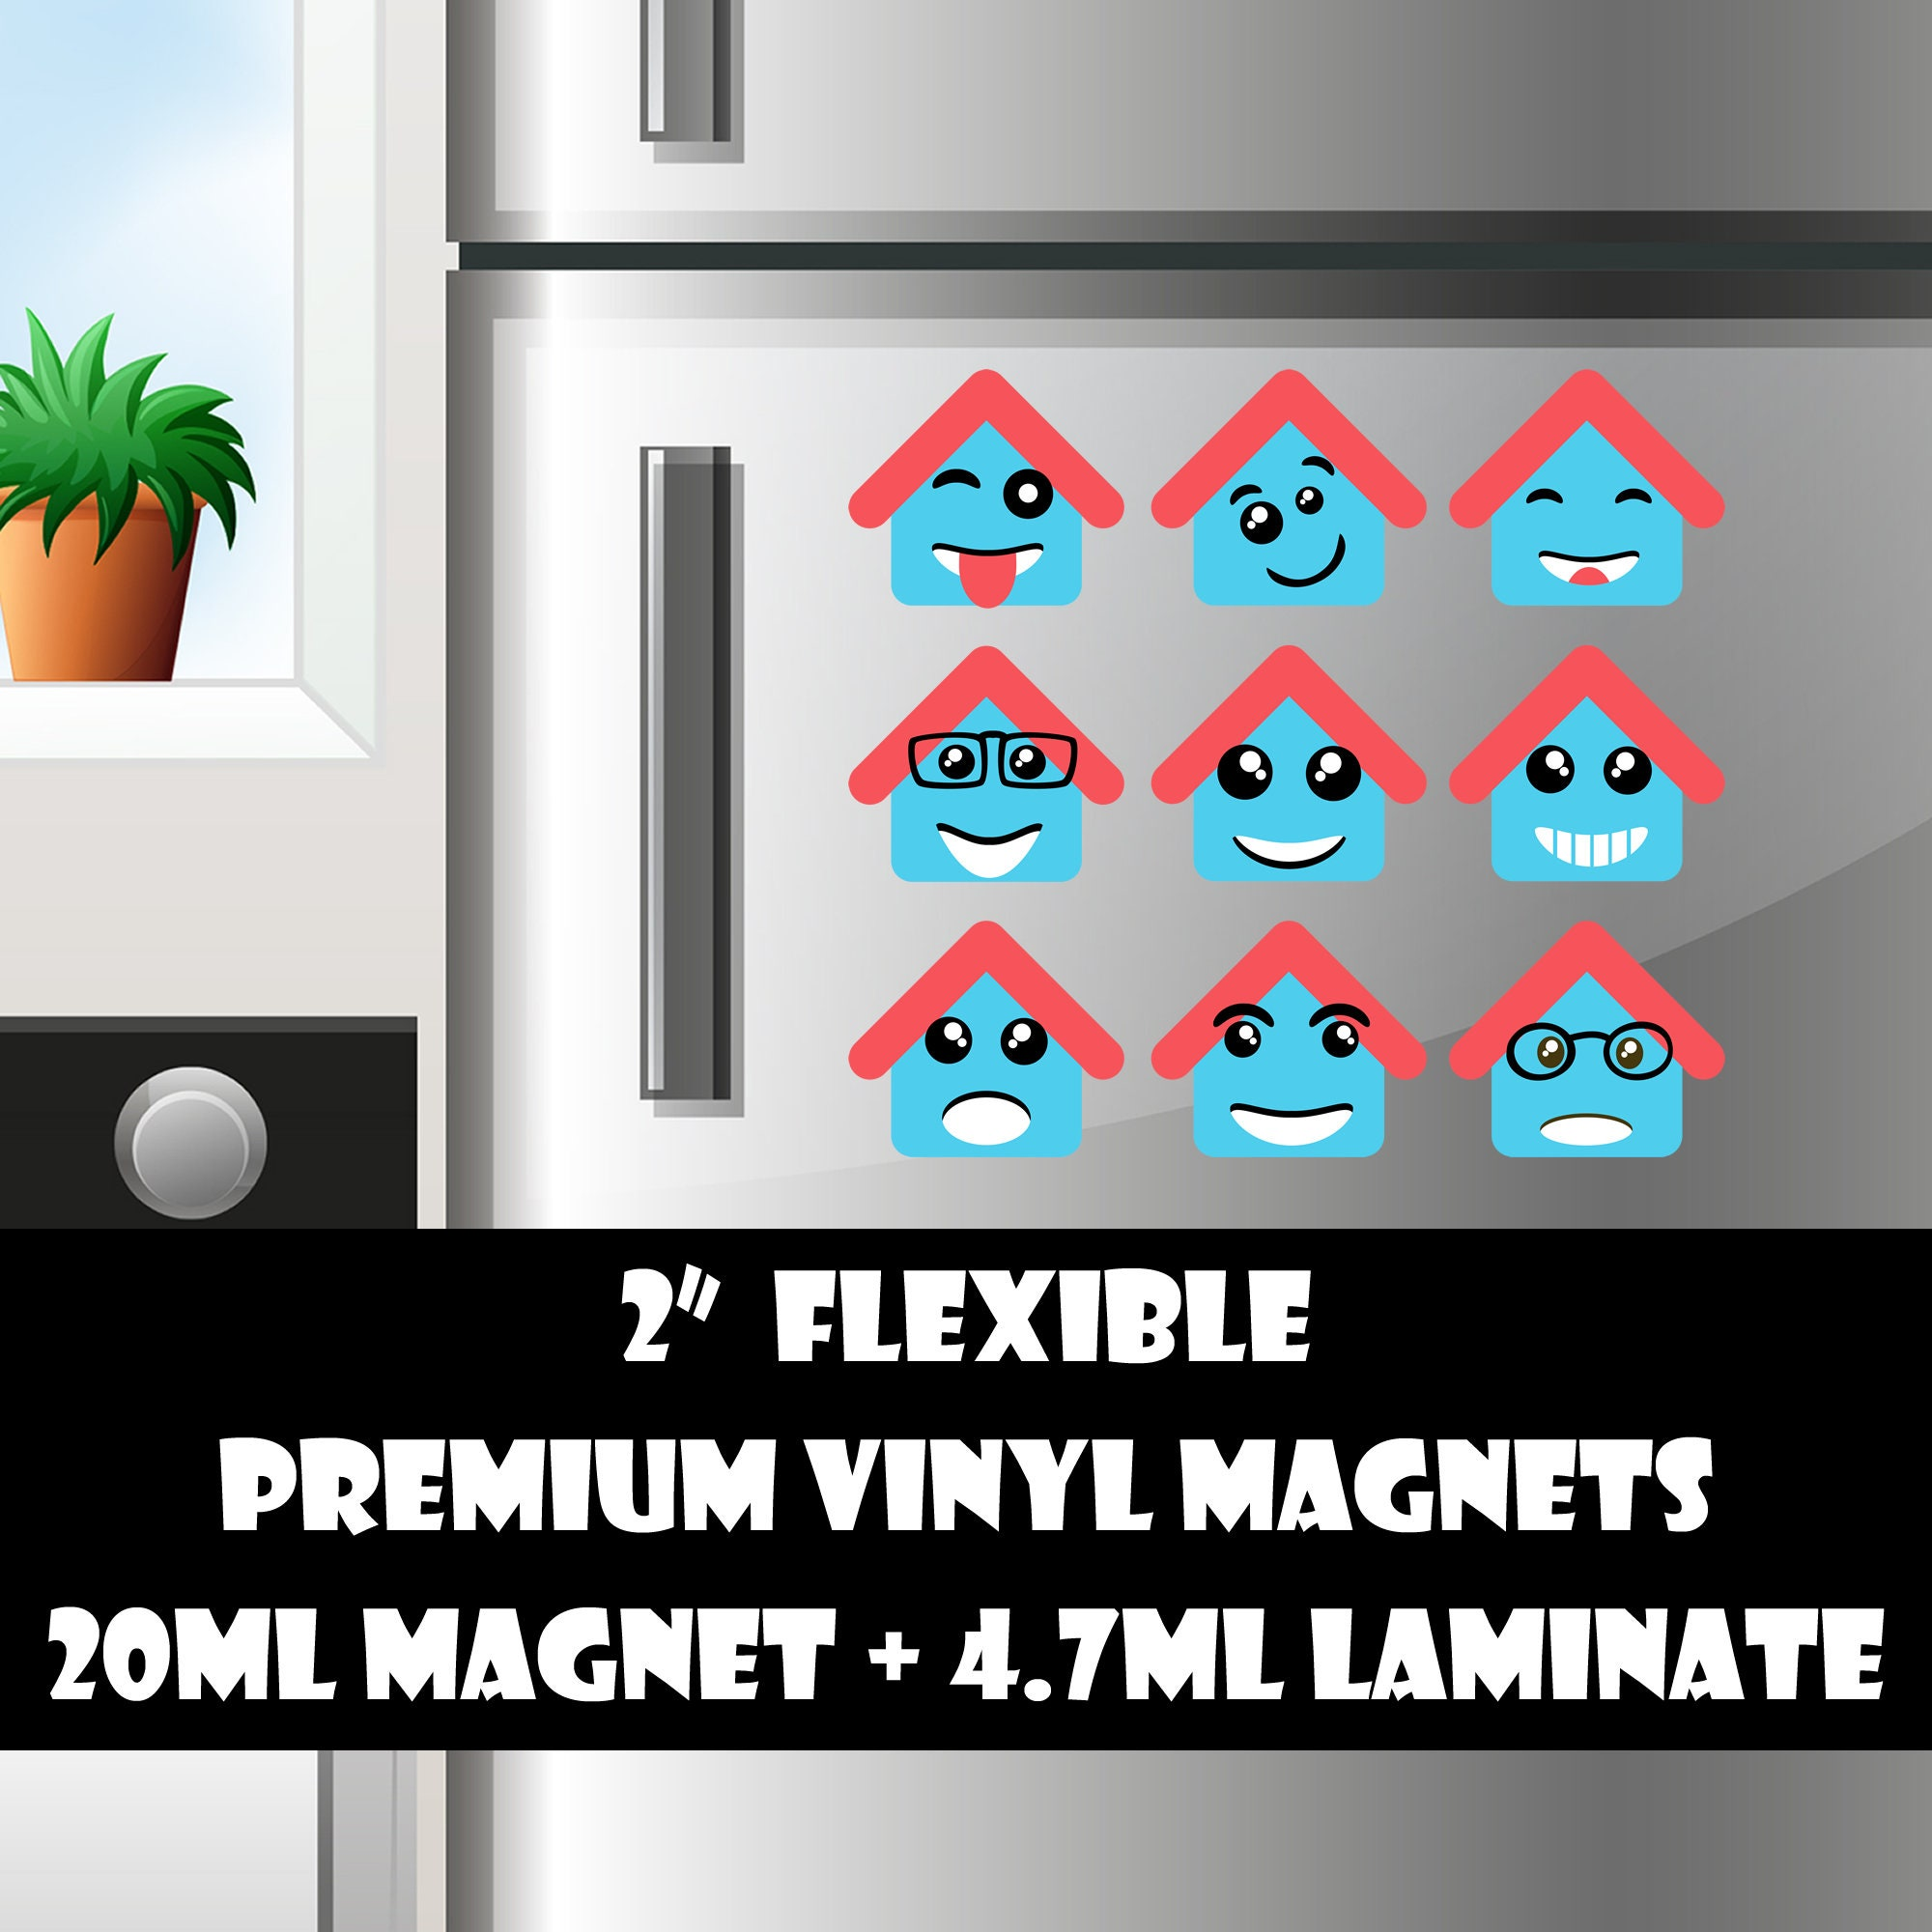 9 2inch home emoji fridge magnets or stickers standard, photo or vinyl print materials with laminate or magnet options available.